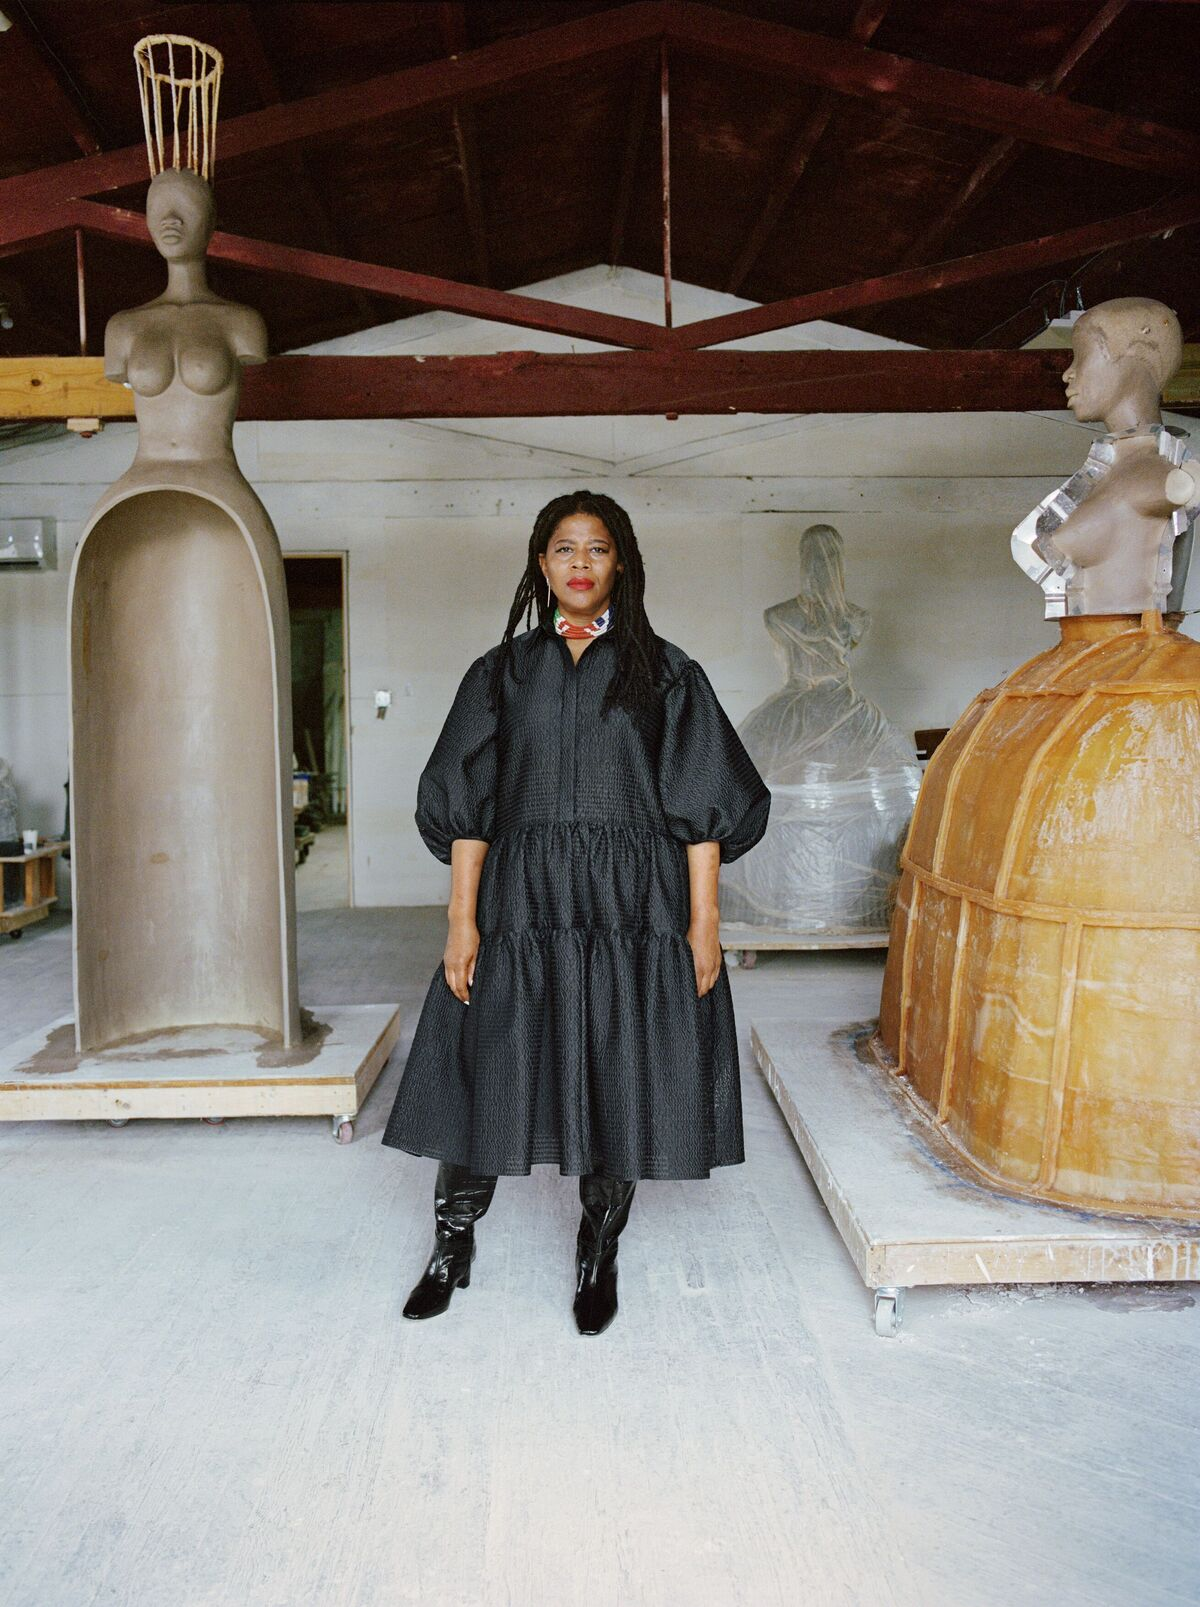 Simone Leigh photographed at Stratton Sculpture Studios, 2020. Photo by Shaniqwa Jarvis courtesy Hauser and Wirth.